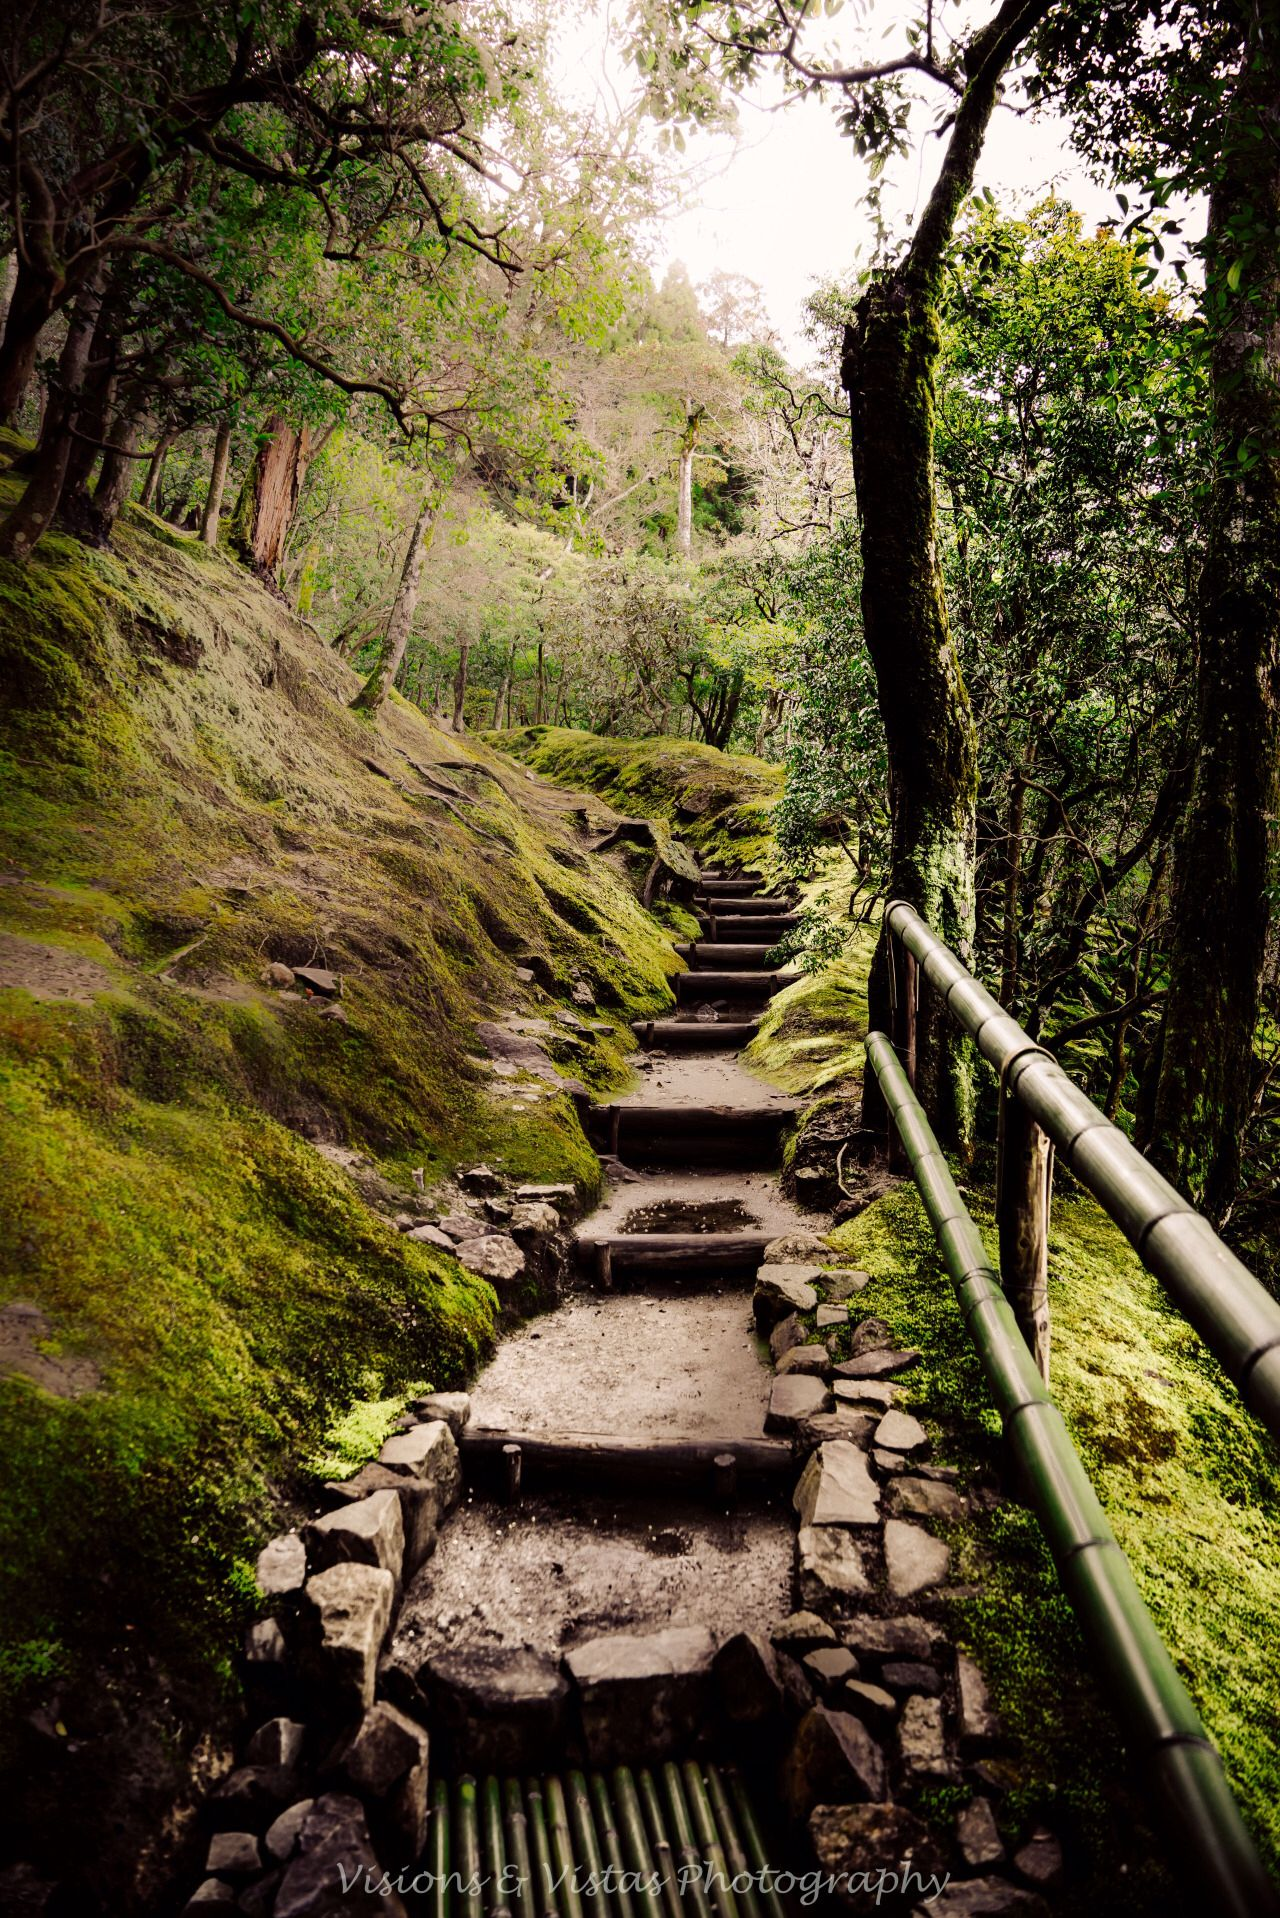 Pin by Kevin Curtin on stone walls   Pinterest   Nature animals ...